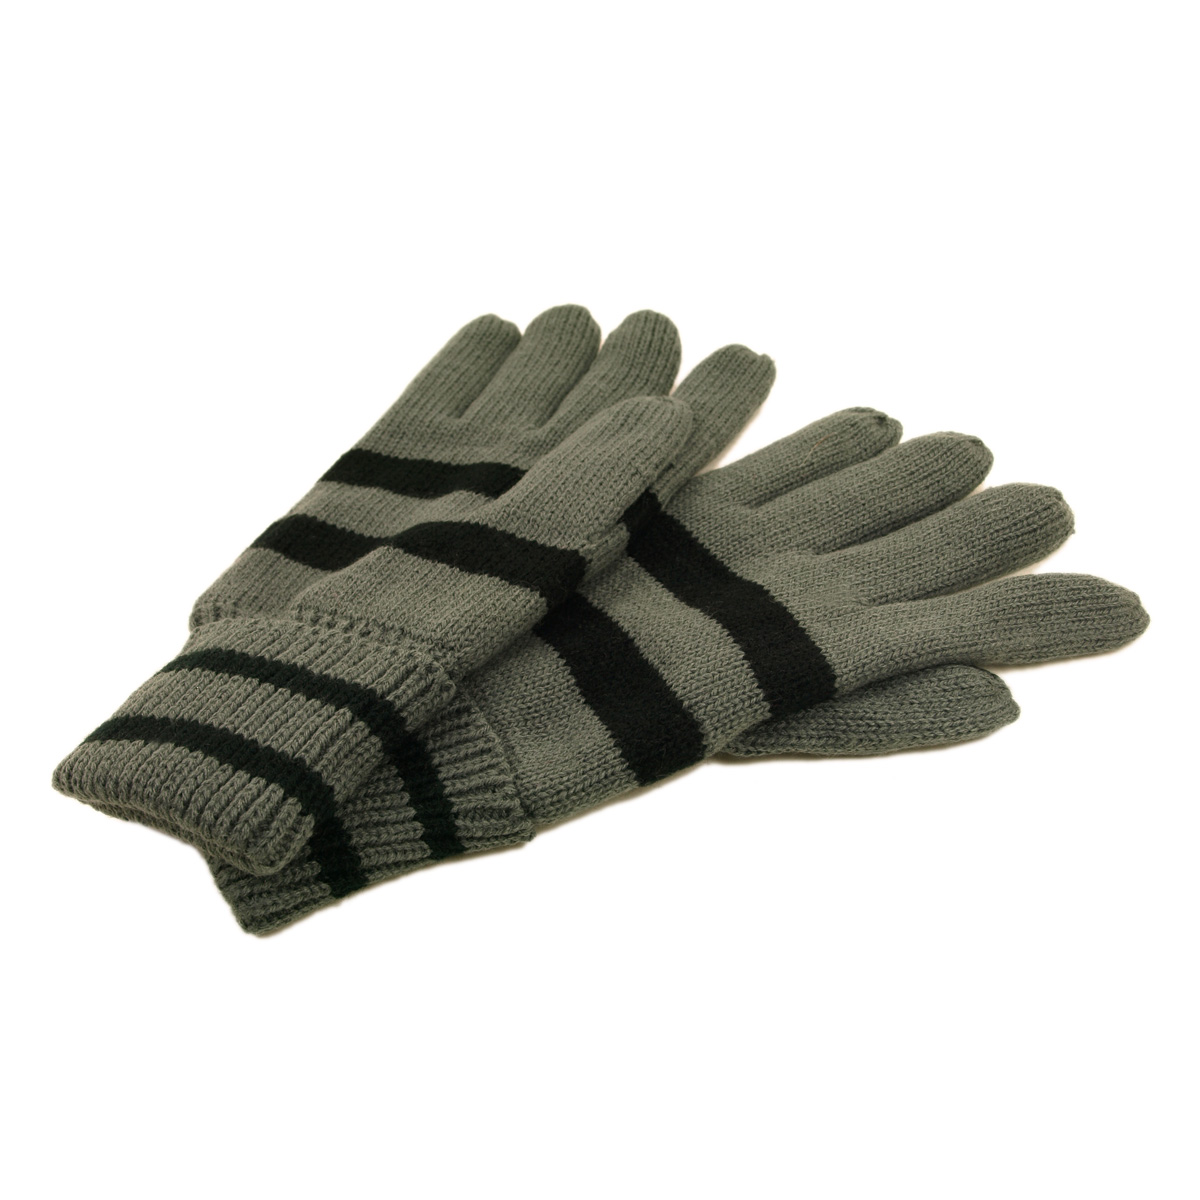 Soft Knit Men's Striped Winter Insulated Gloves by Insulated Gloves